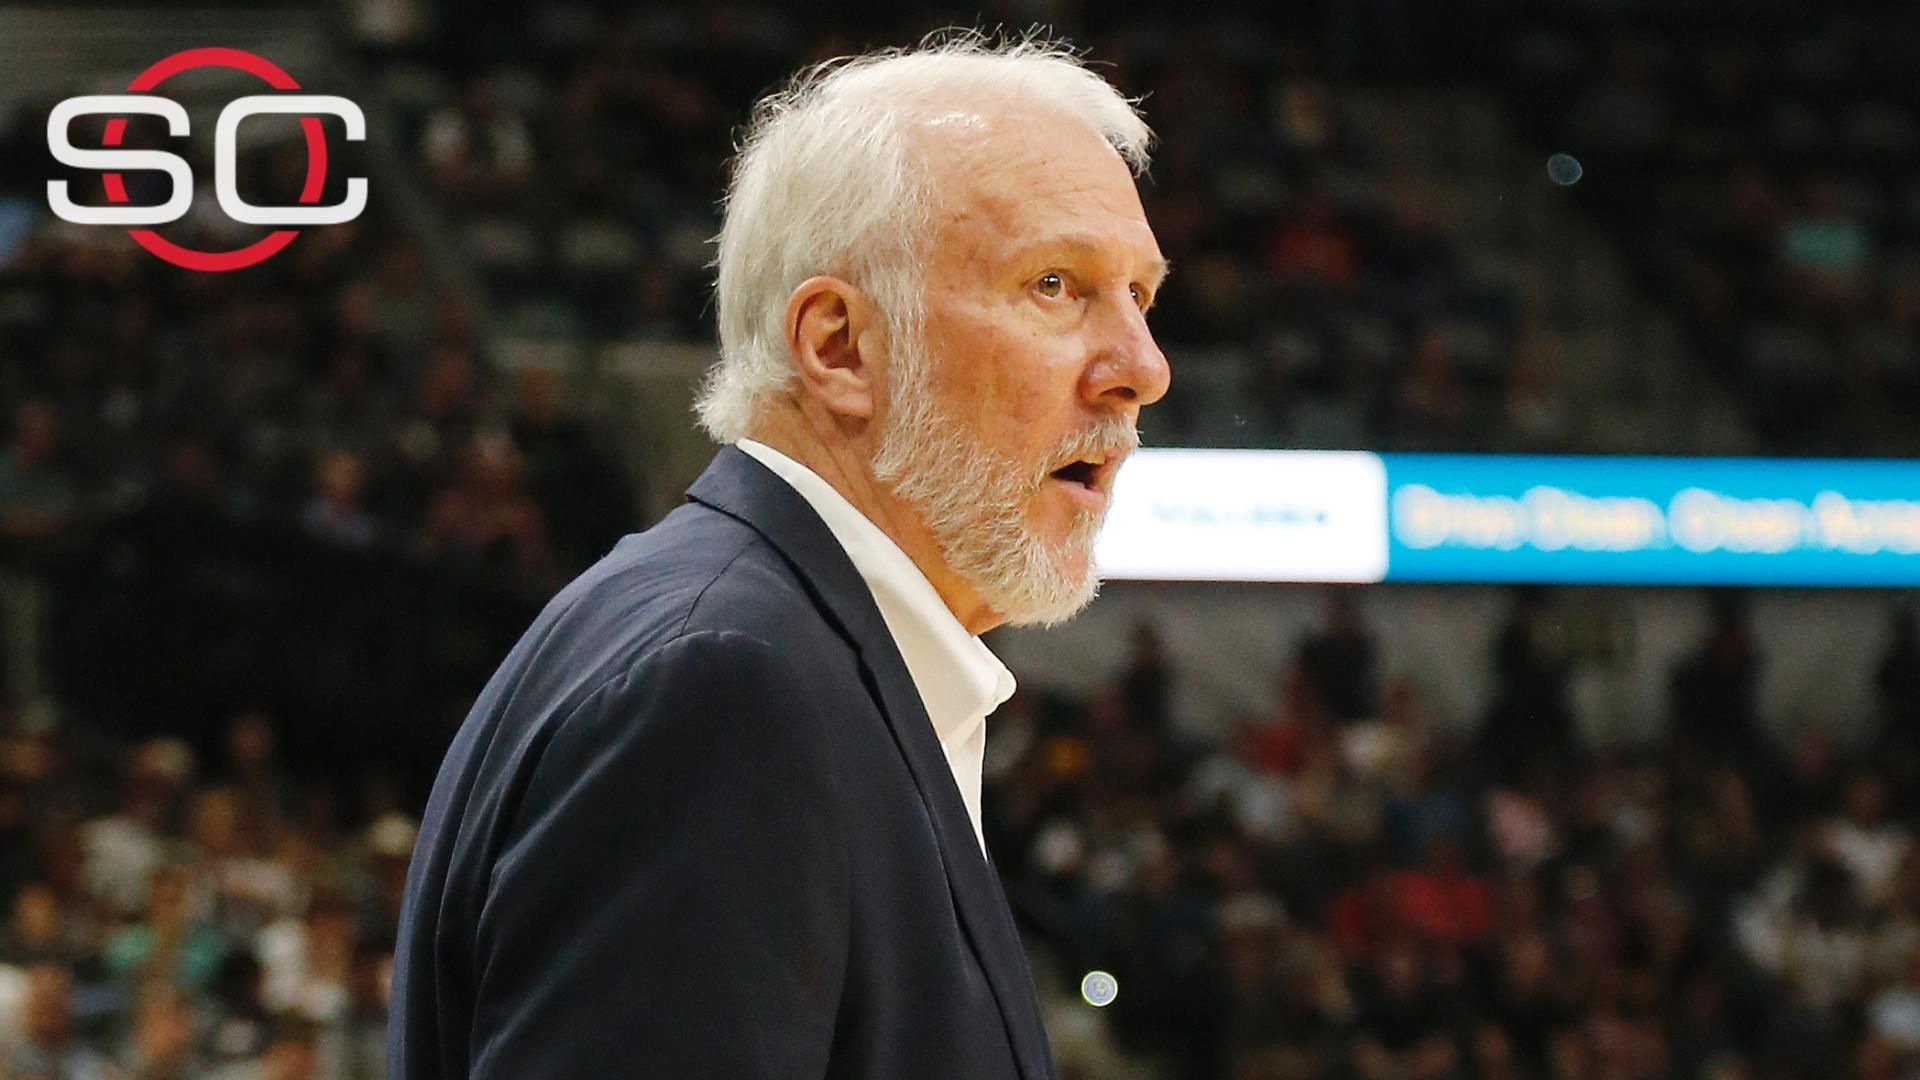 Gregg Popovich to coach U.S. men's basketball team